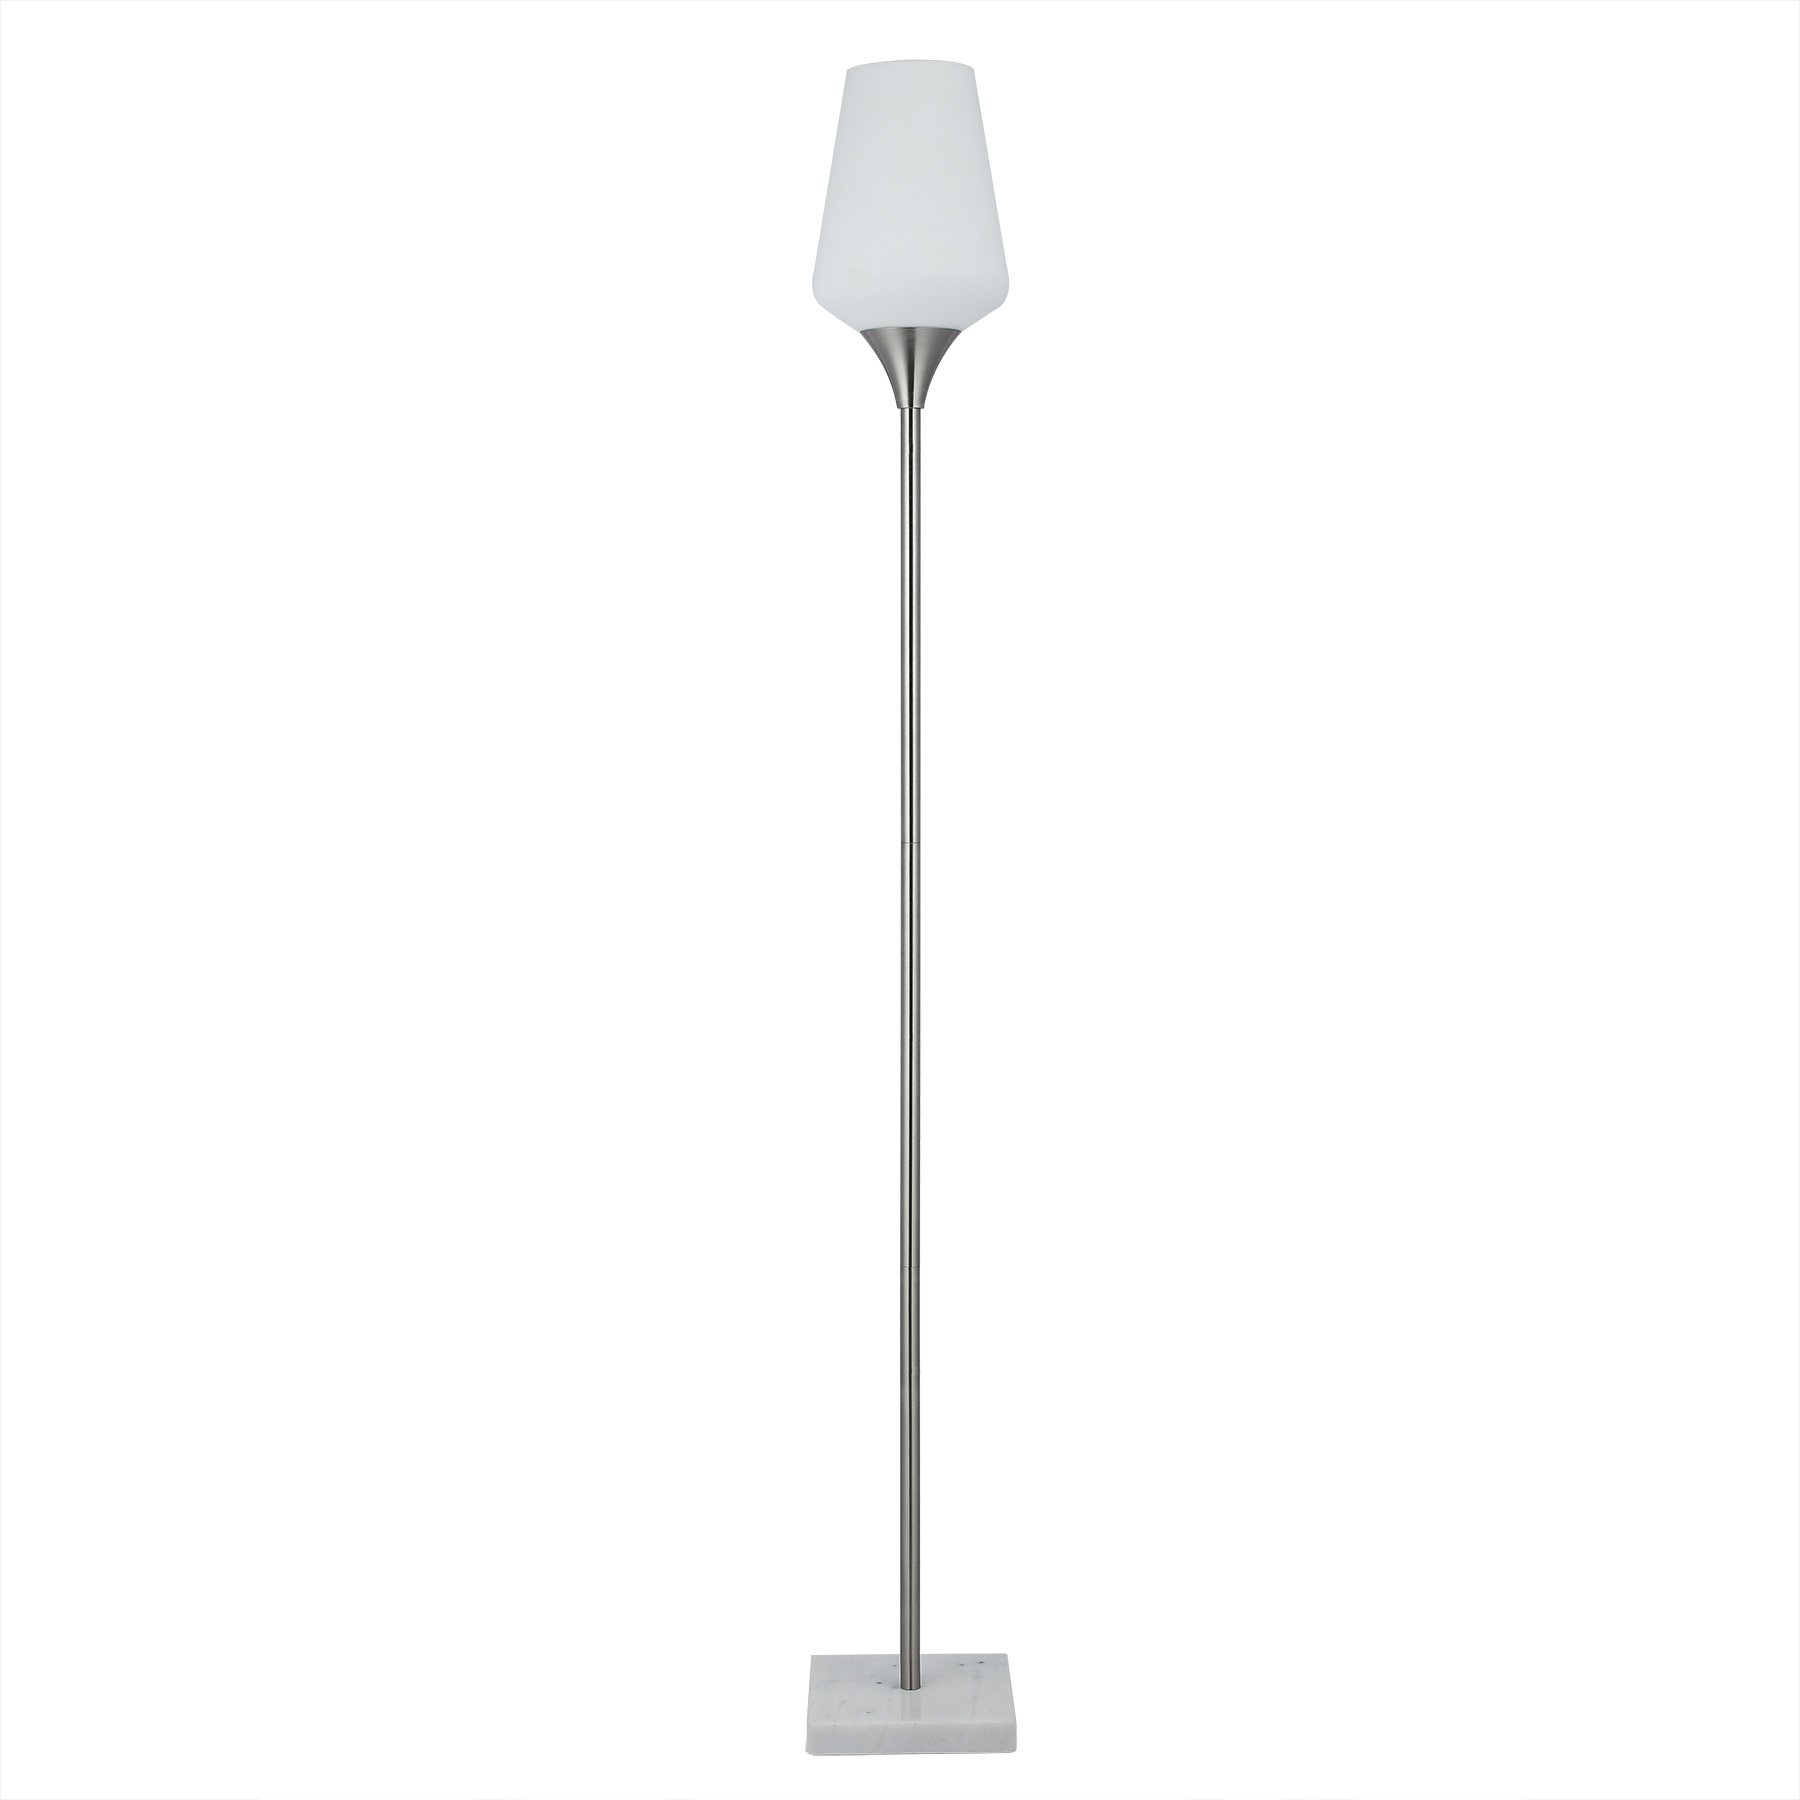 CO-Z LED Floor Lamp, Modern Brushed Nickel Torchiere Floor Lamp for Bedroom Living Room Corner, Bright Uplight Standing Pole Lamp with Marble Base and Opal Tulip Glass Shade for Bedside Console Table